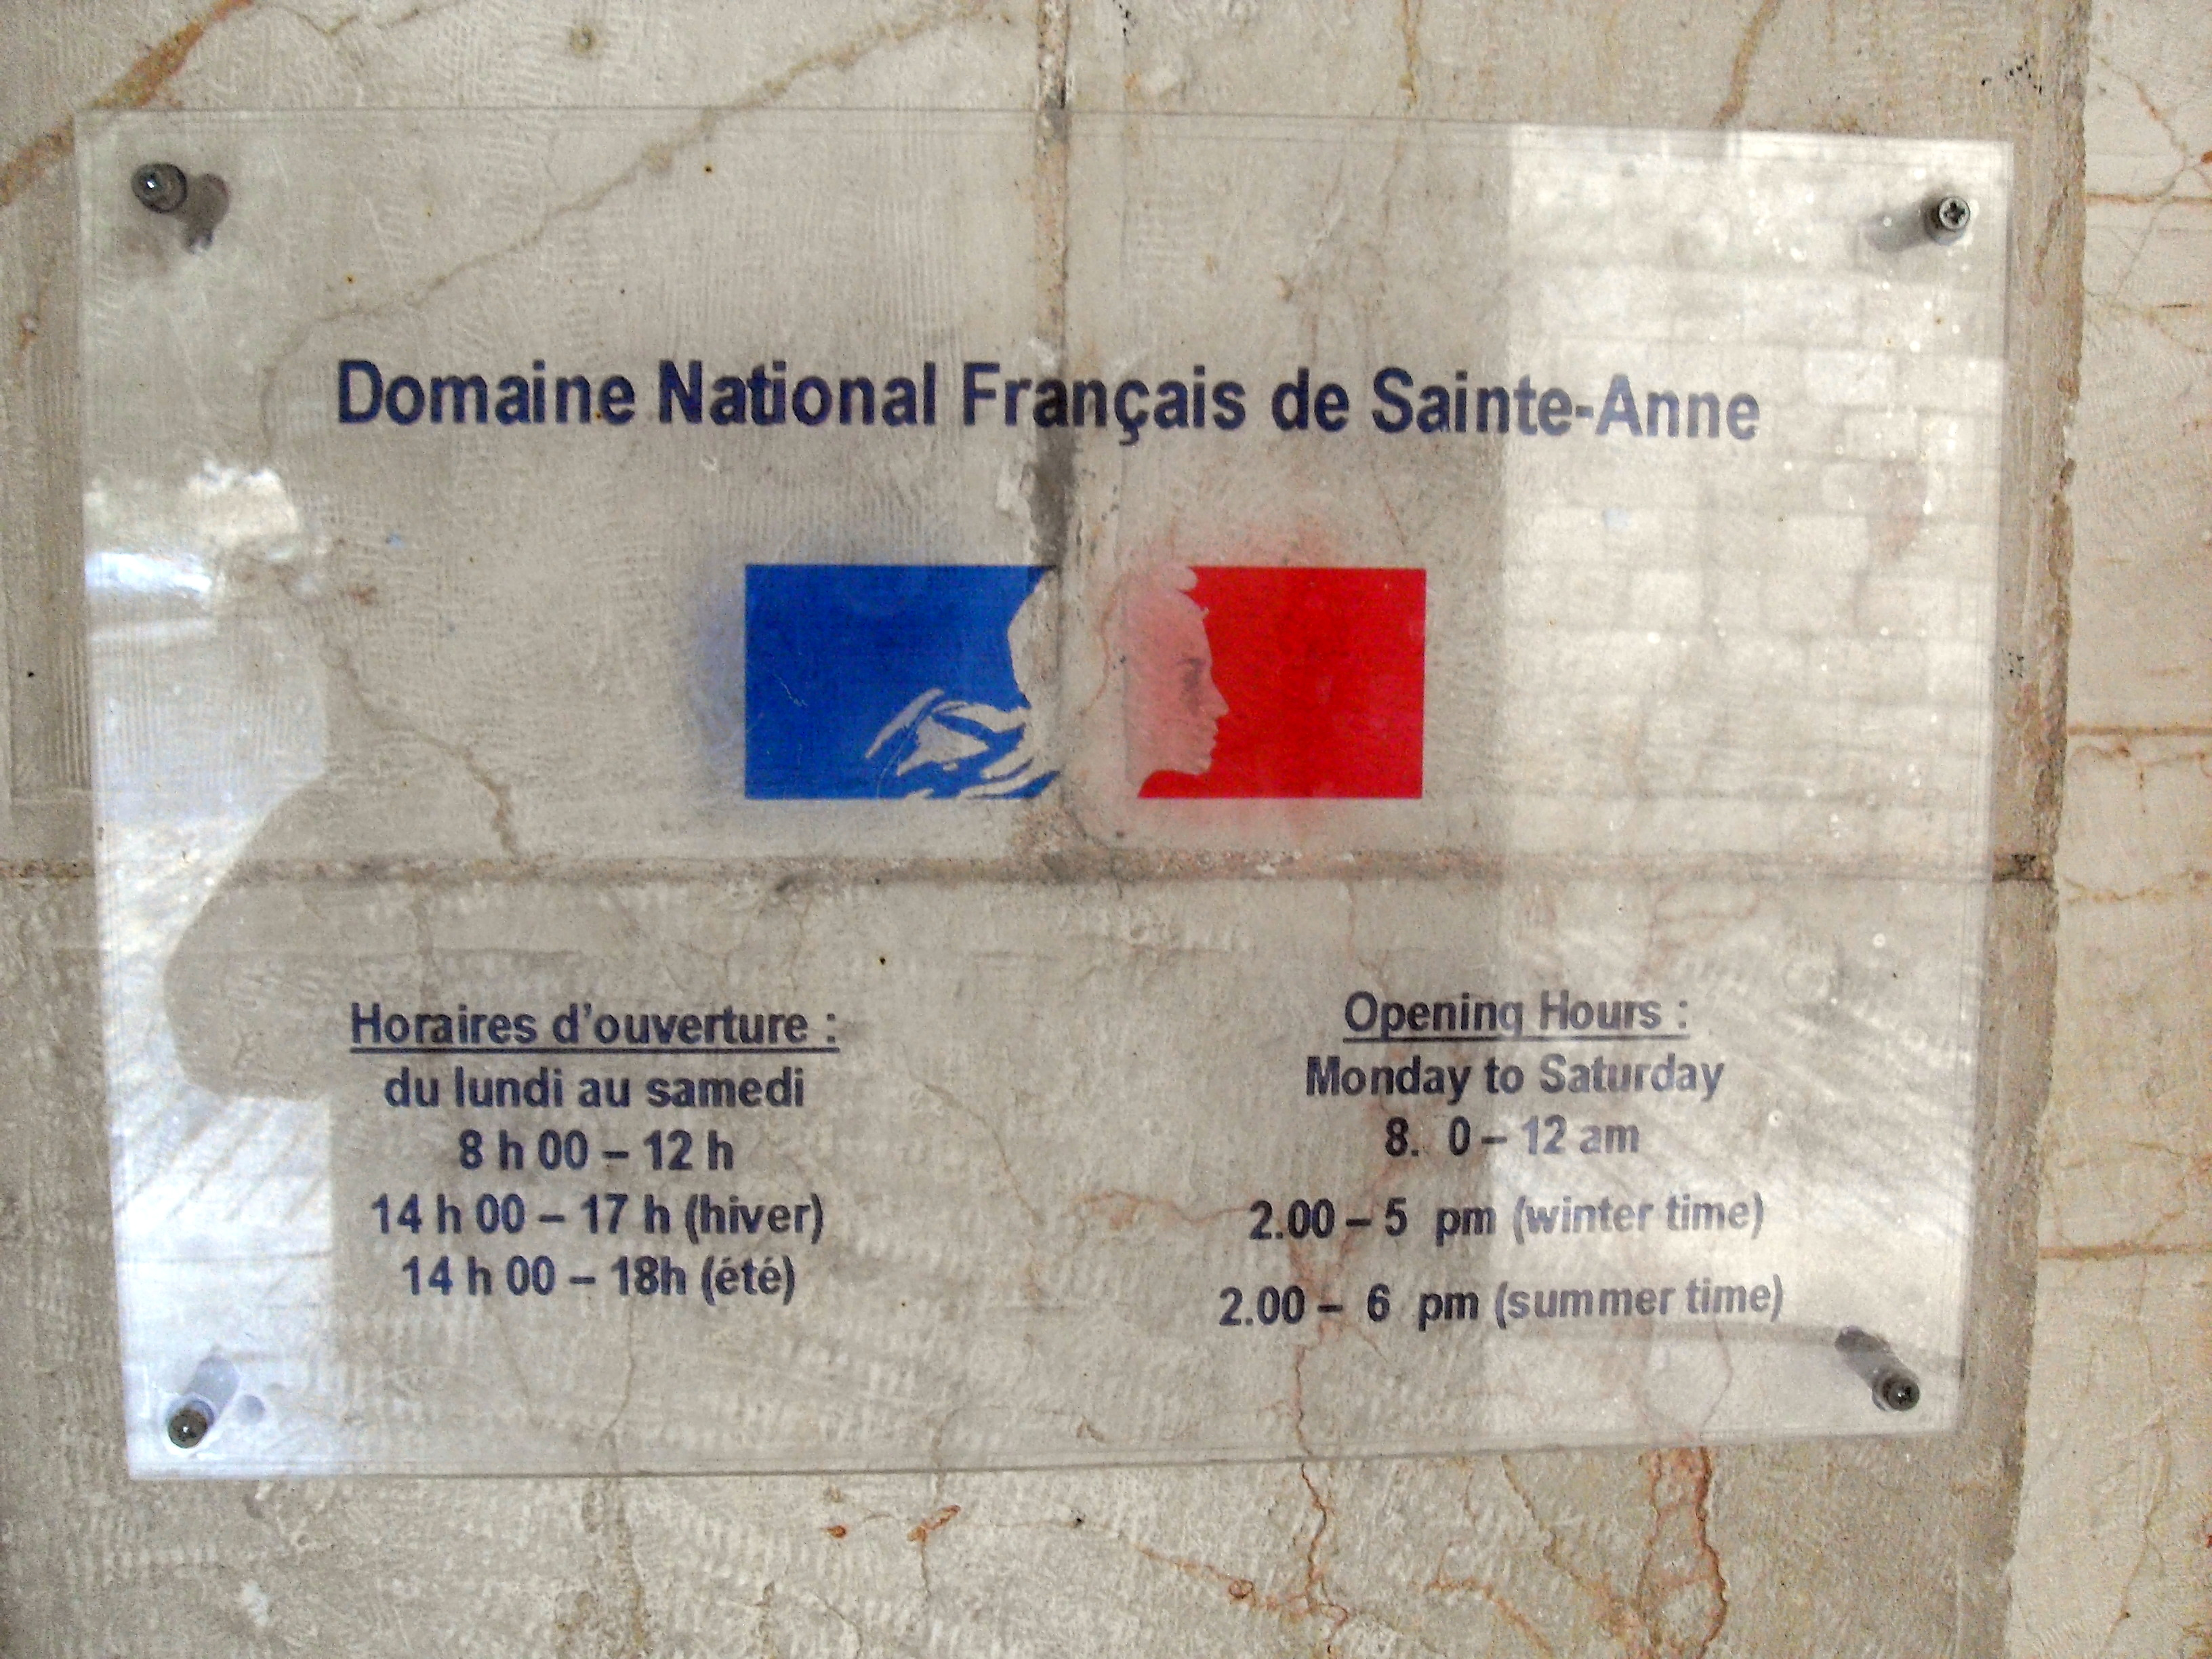 http://upload.wikimedia.org/wikipedia/commons/3/3b/Old_Jerusalem_Domaine_National_Fran%C3%A7ais_de_Saint-Anne_sign.jpg